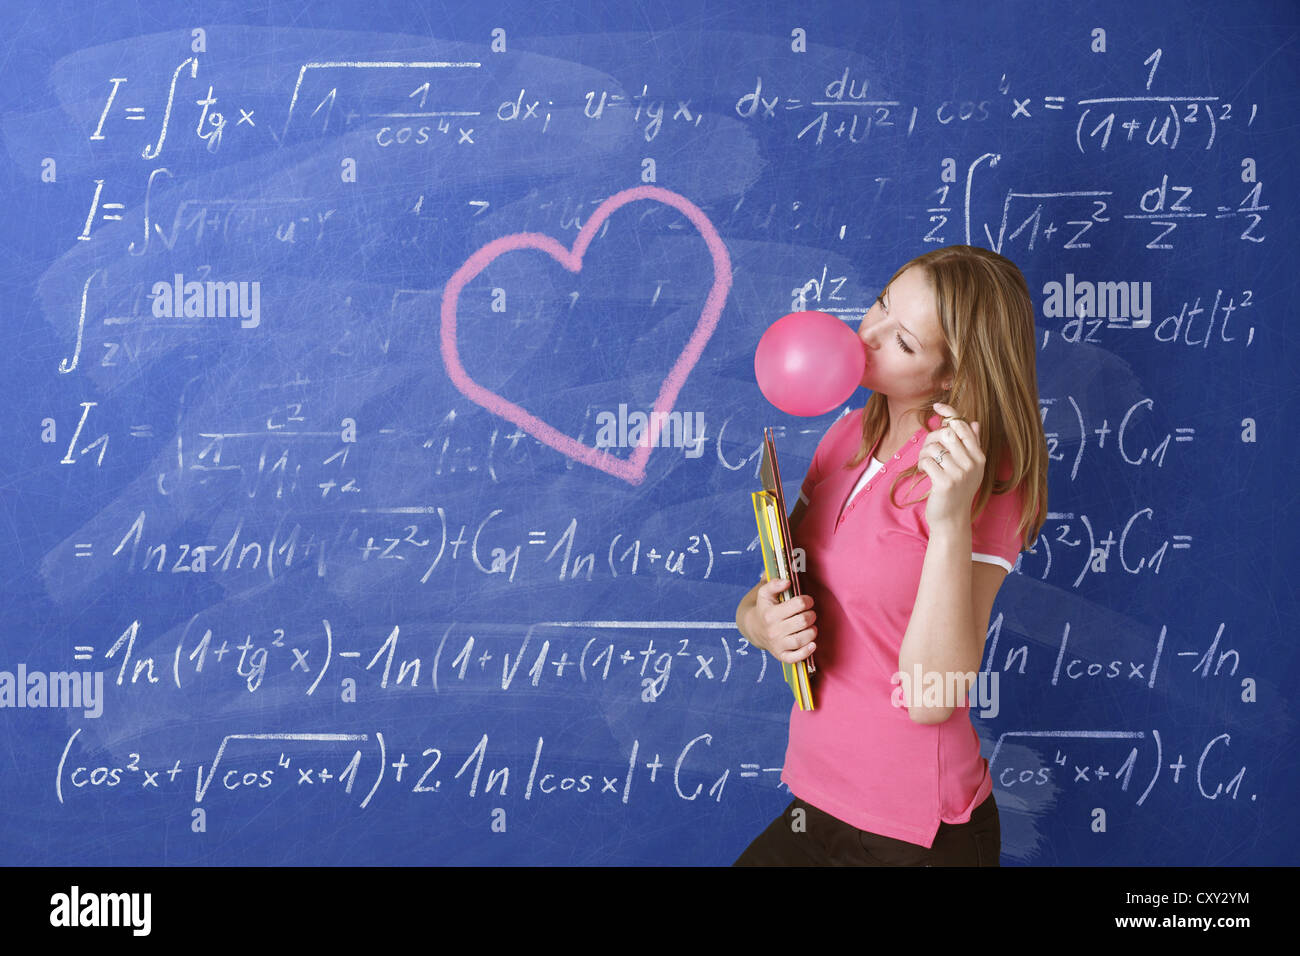 Schoolgirl daydreaming while blowing a bubble with bubble gum in front of a school blackboard with a drawn heart - Stock Image